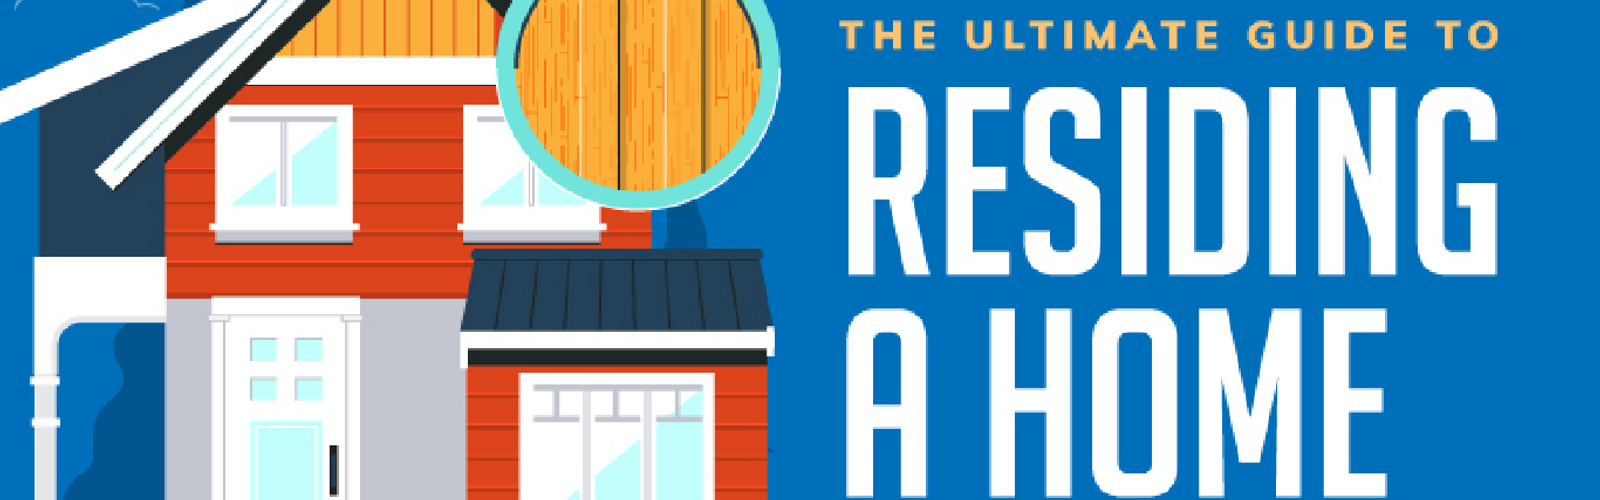 The Ultimate Guide to Residing A Home 1610 01